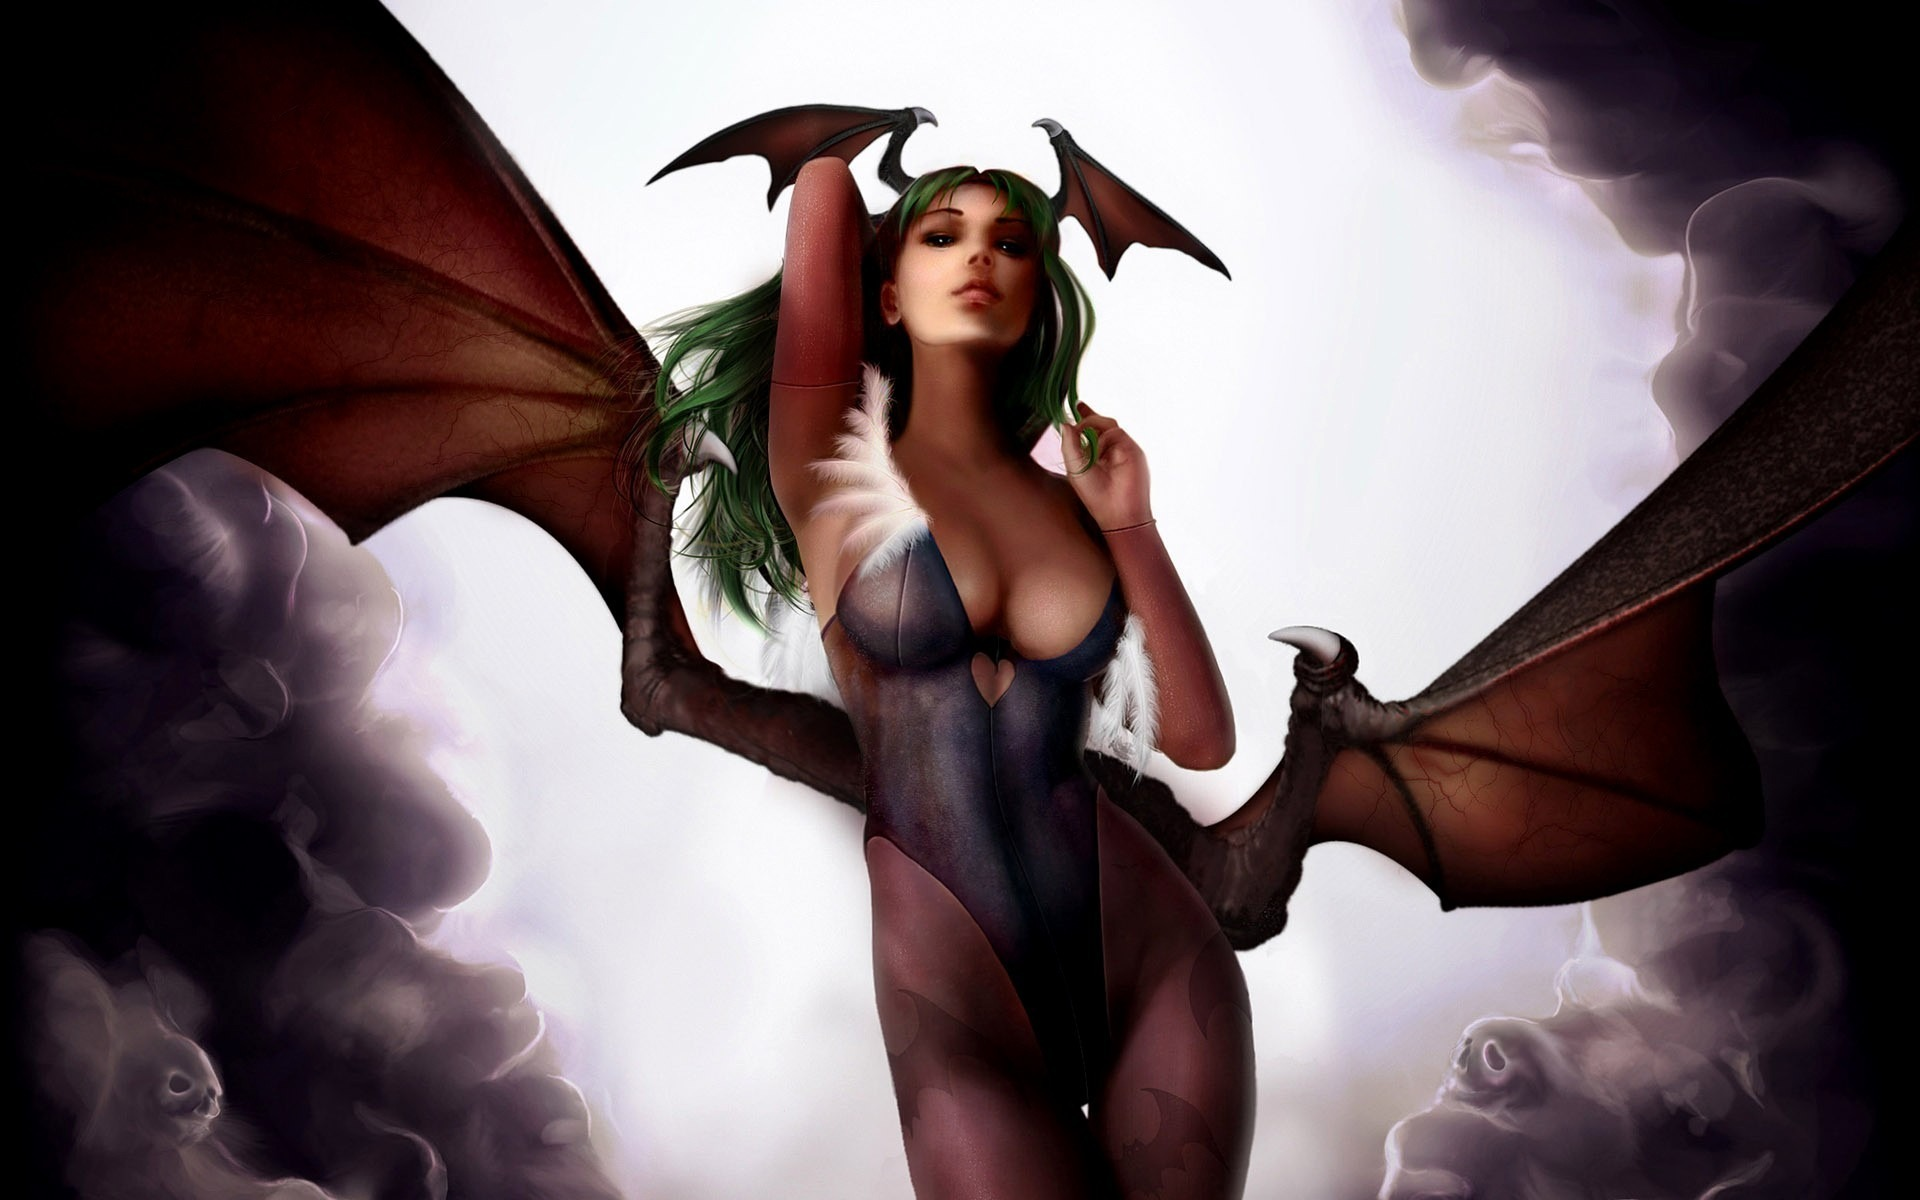 Winged succubus erotic fantasy nude videos